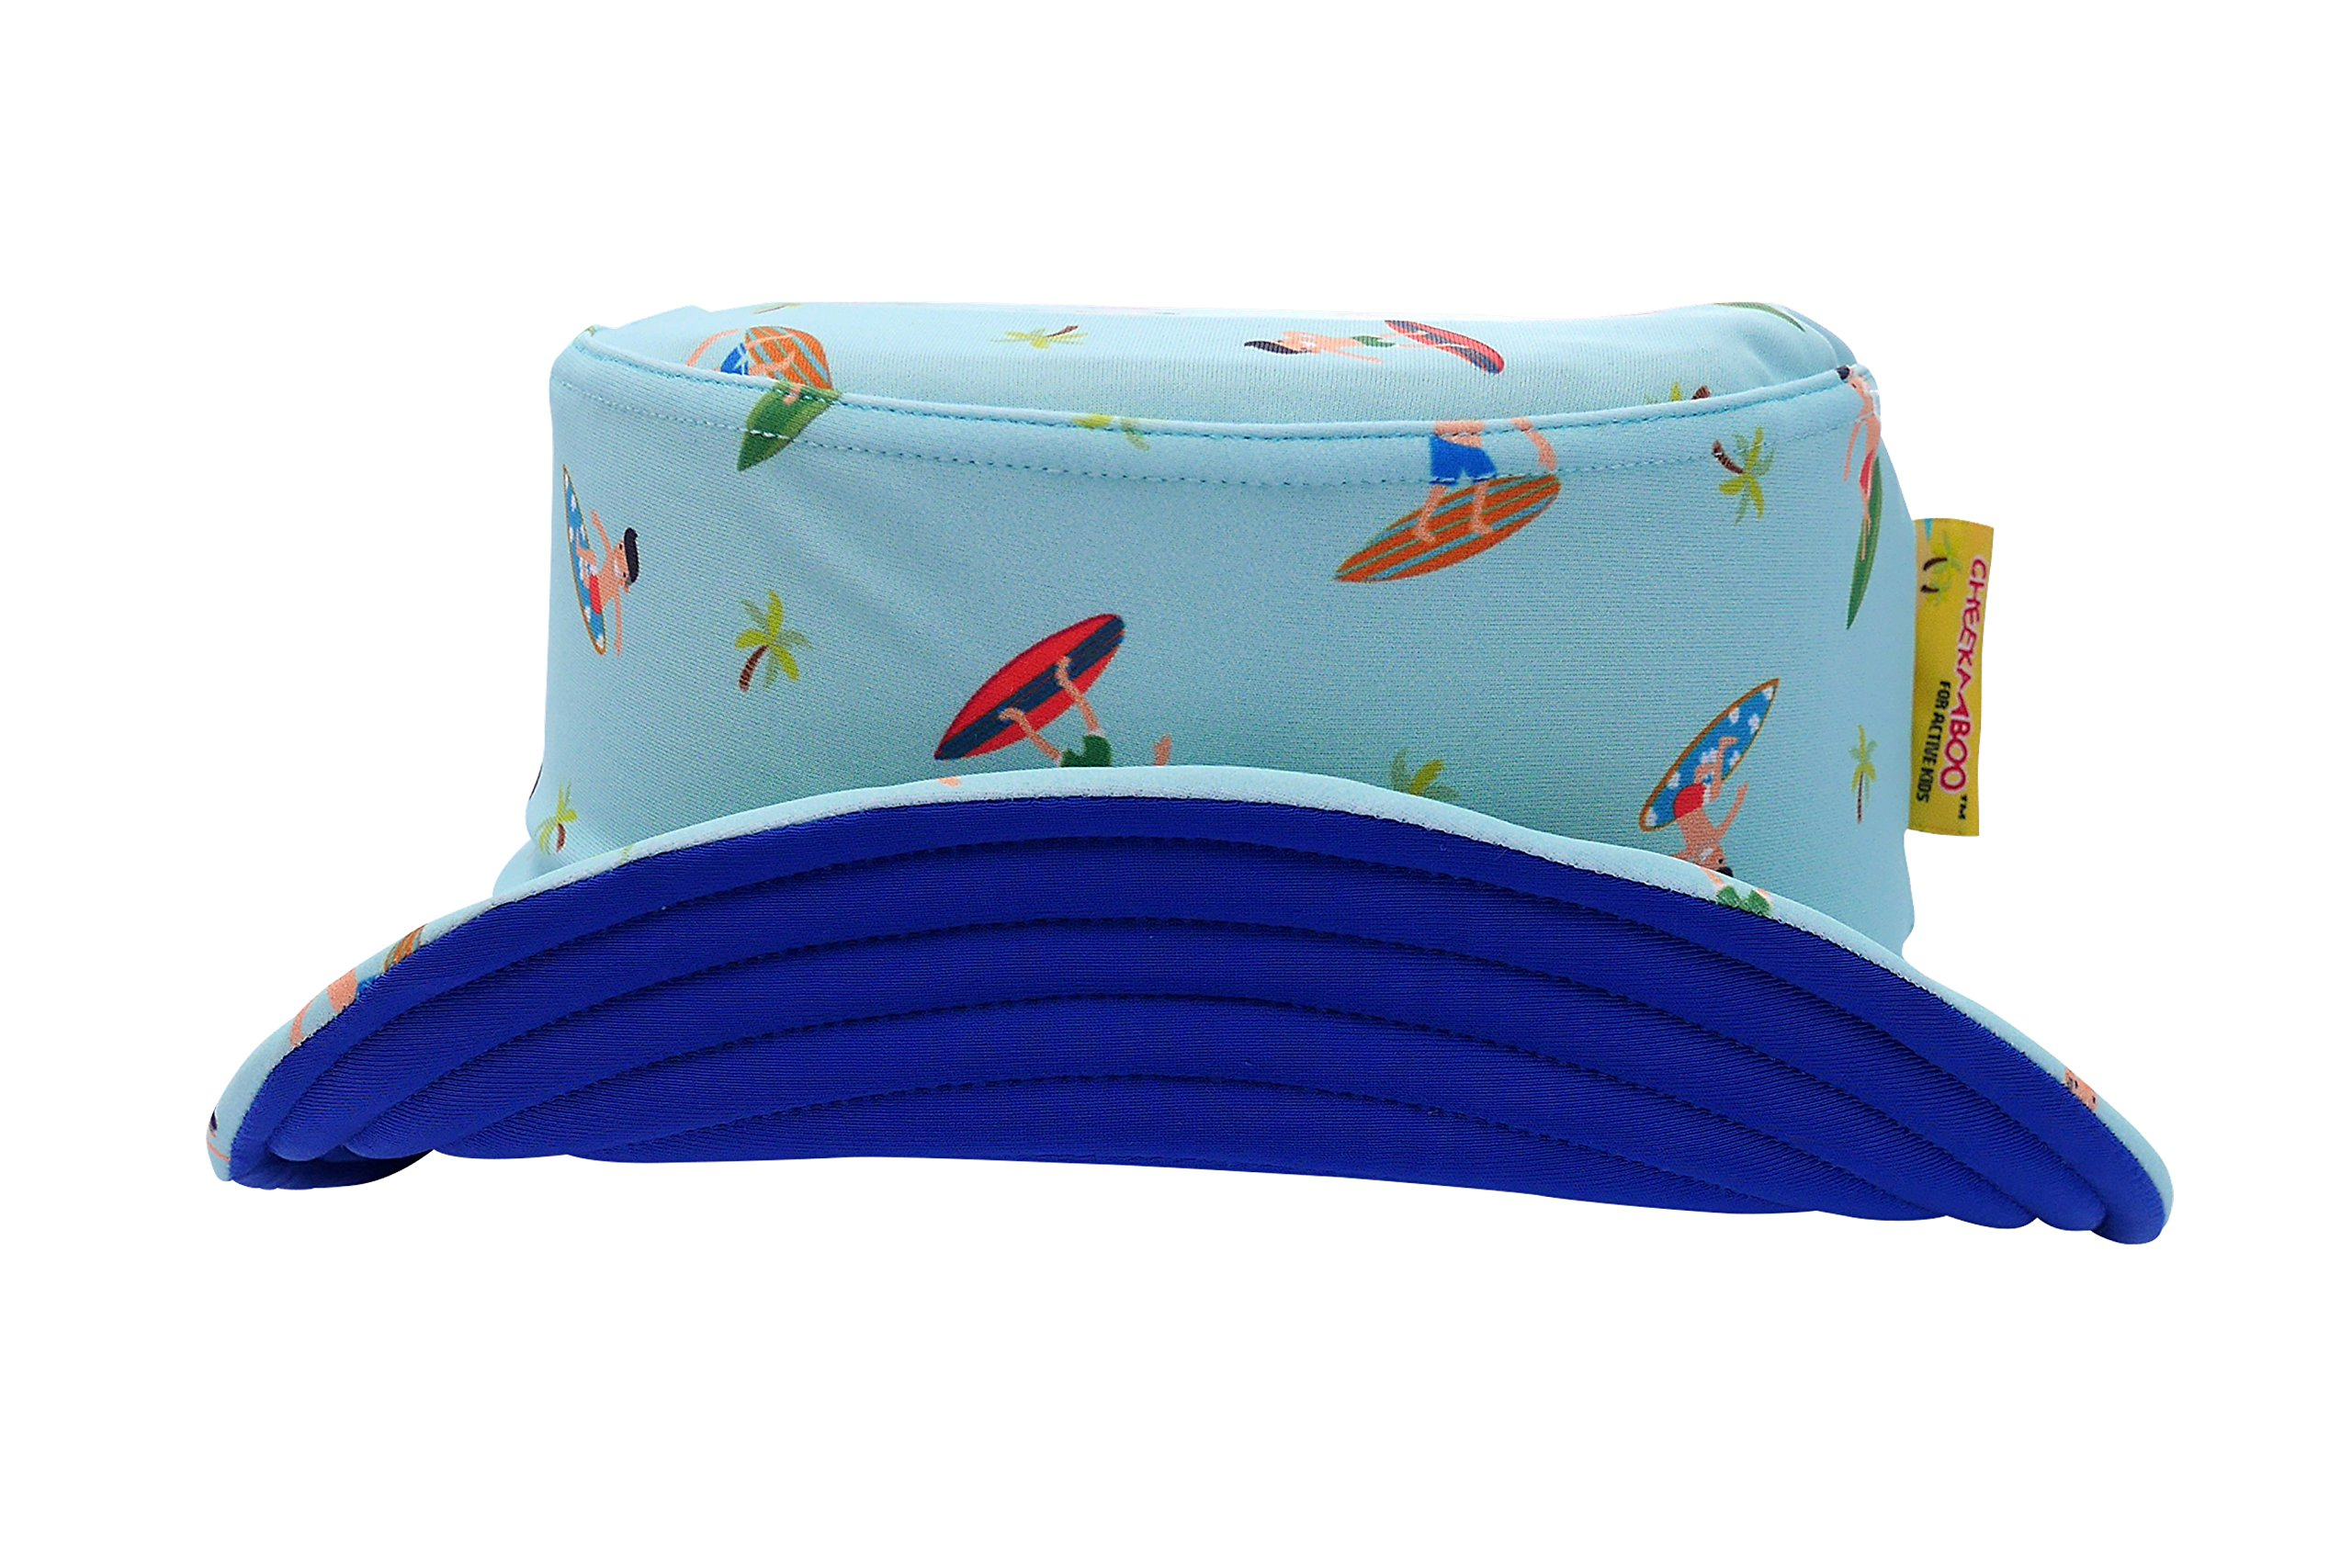 Cheekaaboo Kids & Toddler Reversible Sun Protection Hat for Boys and Girls, Age 2-8, Blue (Navy Blue/Surfers) by Cheekaaboo (Image #2)